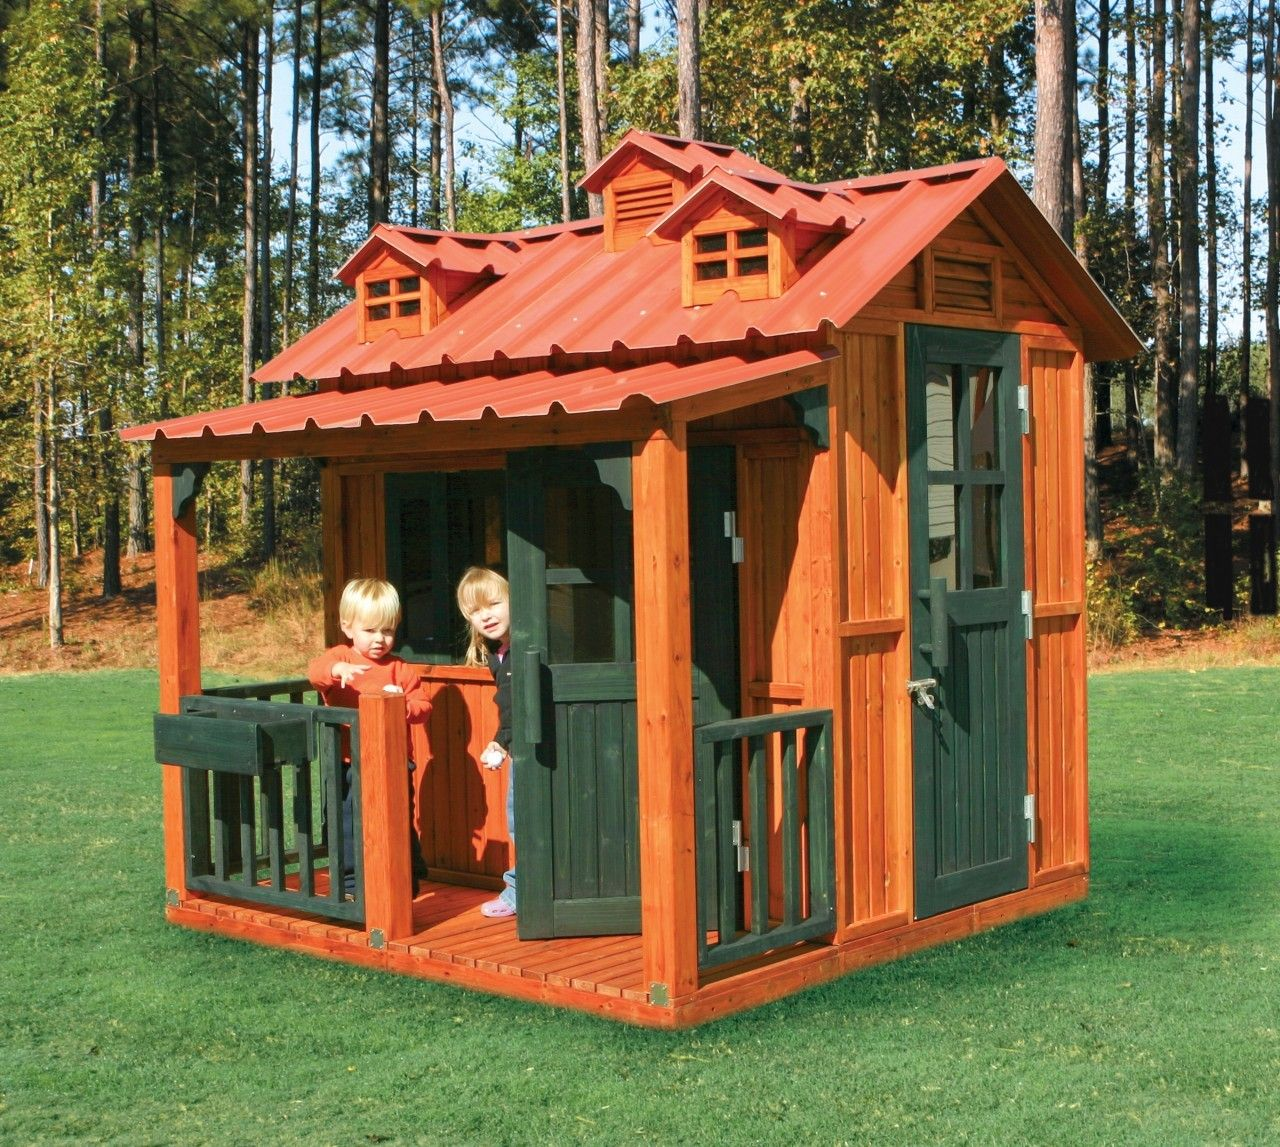 Lovely Funny And Cute Kids Exterior Playhouse Design Inspiration Outdoor Kids Play  House With Wooden Wall Idea Part 21